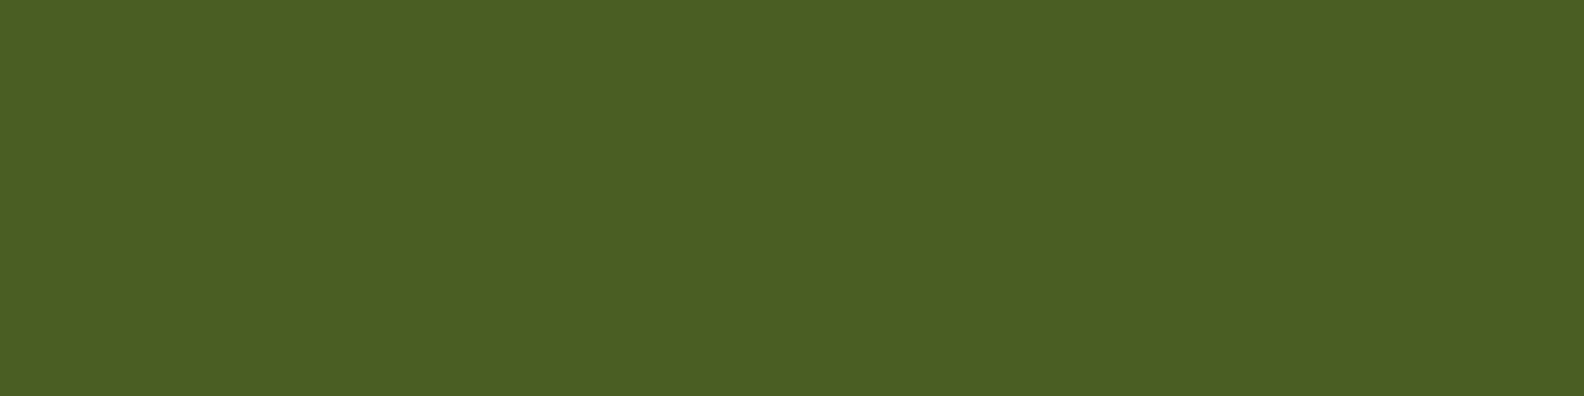 1584x396 Dark Moss Green Solid Color Background